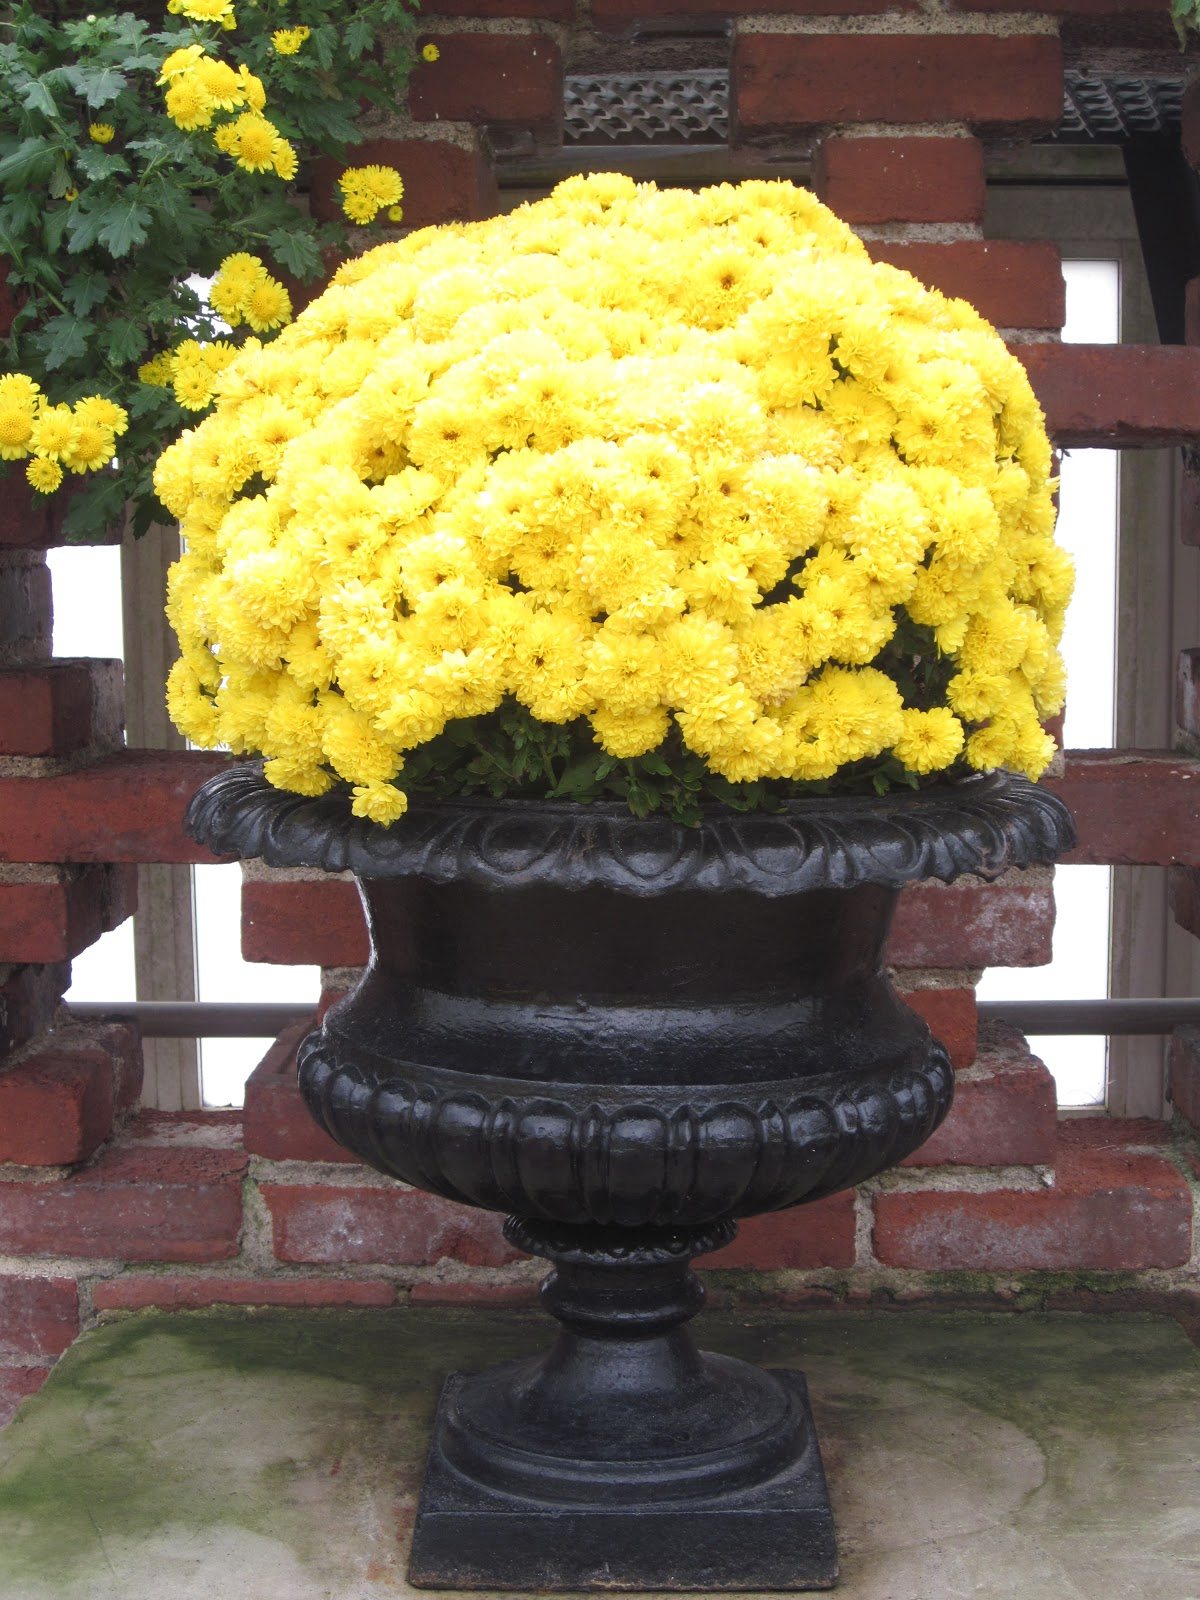 Garden discoveries phipps fall flower show 2012 the yellow mums really pop against the black urn mightylinksfo